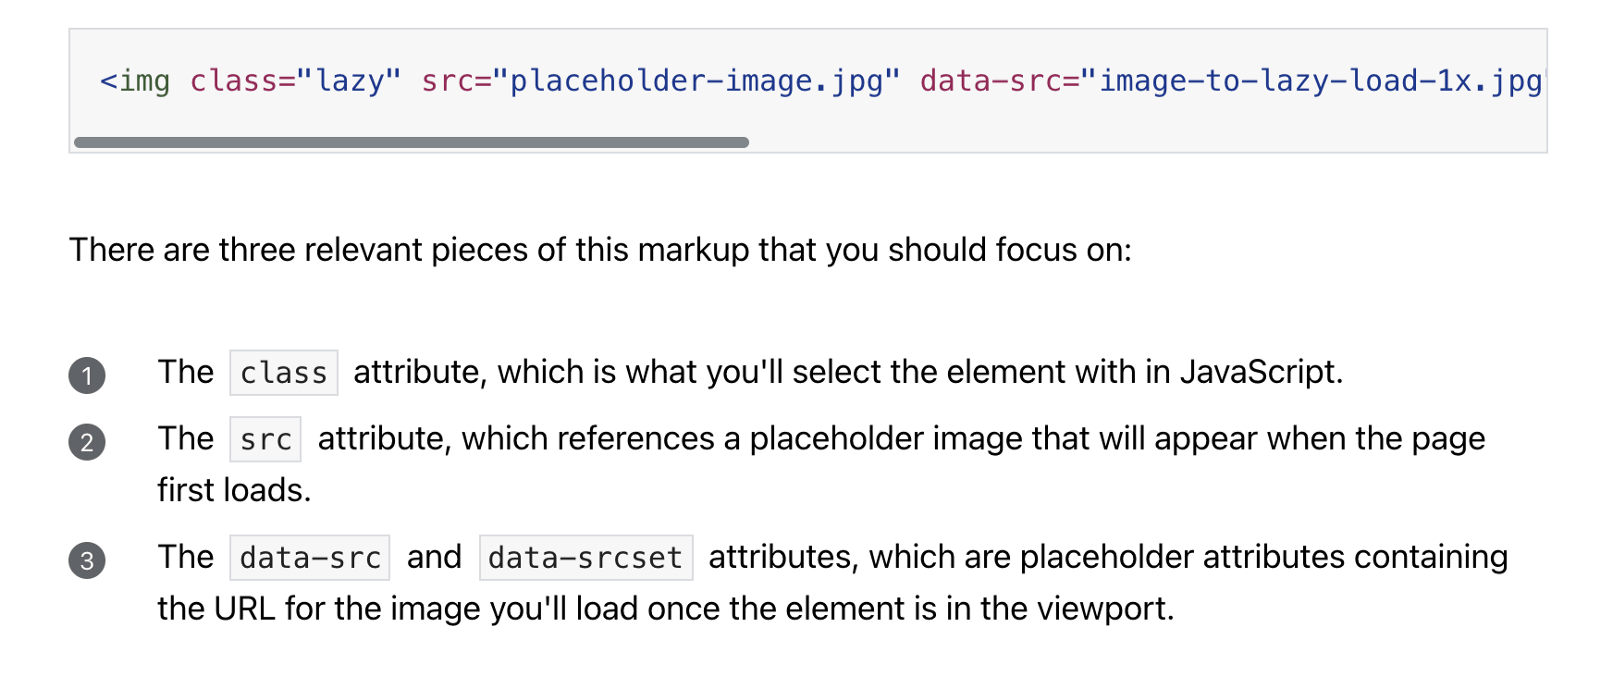 There are three relevant pieces of this markup that you should focus on: 1) The class attribute, which is what you'll select the element with in JavaScript. 2) The src attribute, which references a placeholder image that will appear when the page first loads. 3) The data-src and data-srcset attributes, which are placeholder attributes containing the URL for the image you'll load once the element is in the viewport.